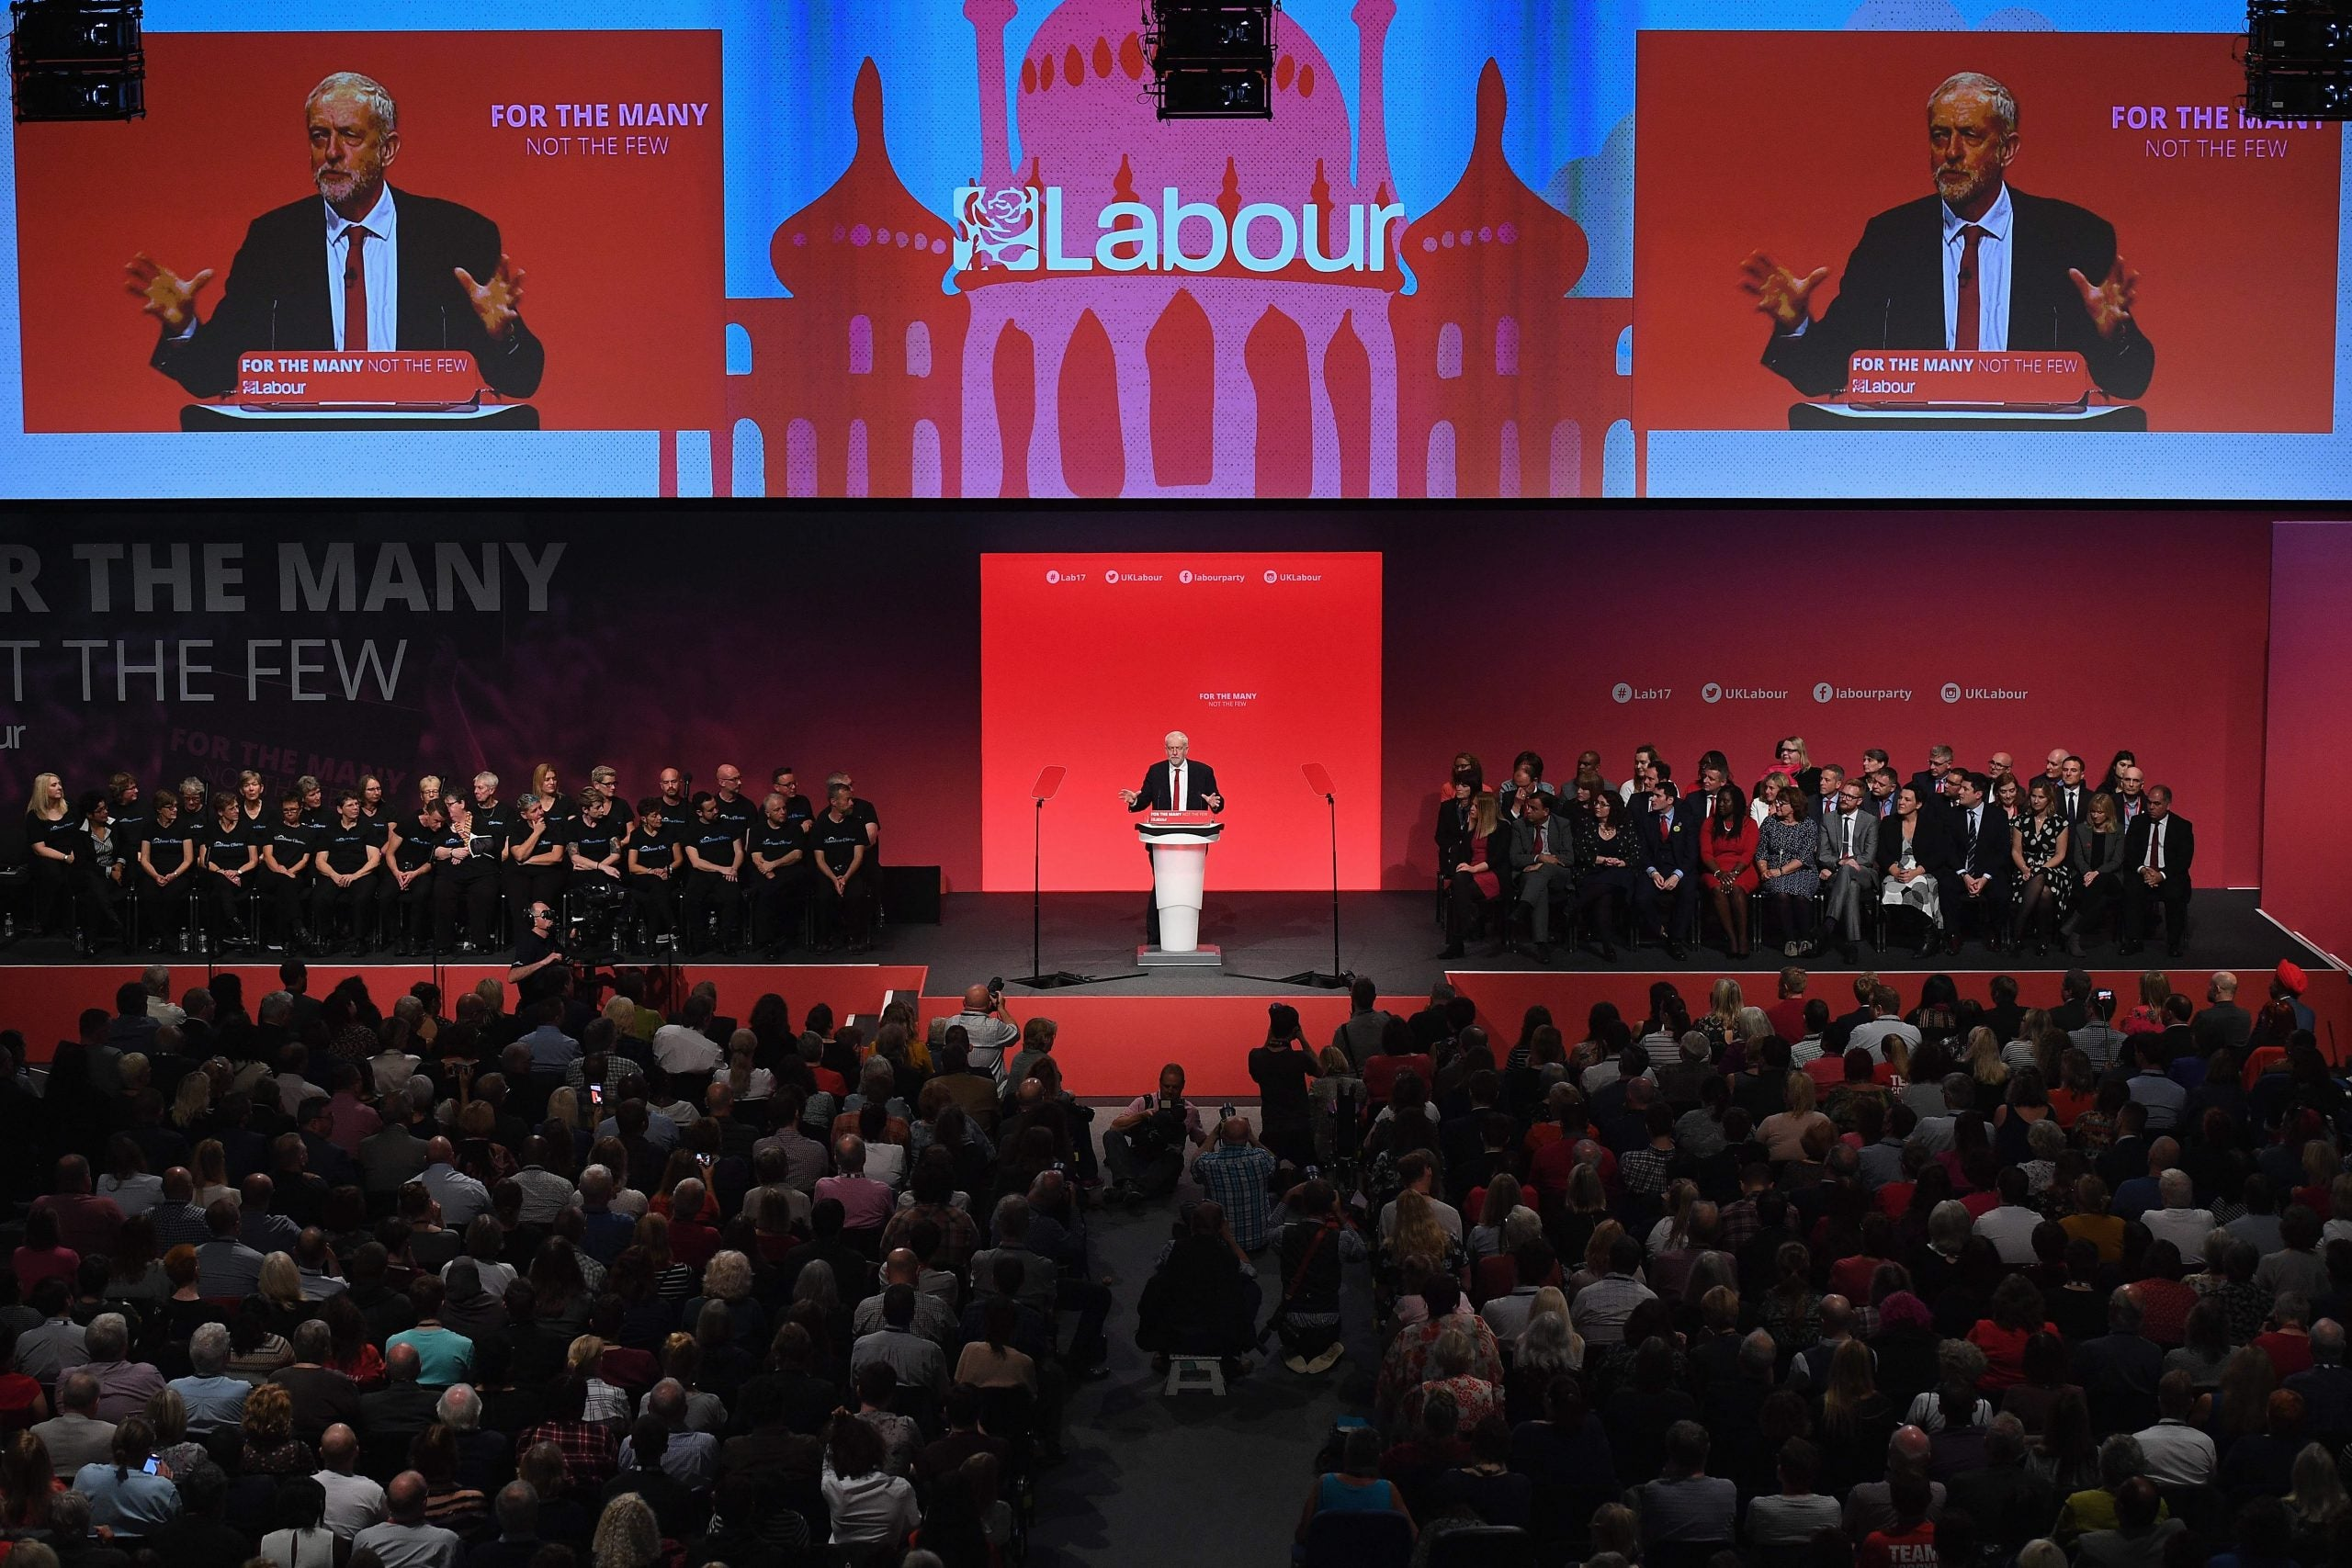 Conference was brilliant – until the antisemitism and victim-blaming started